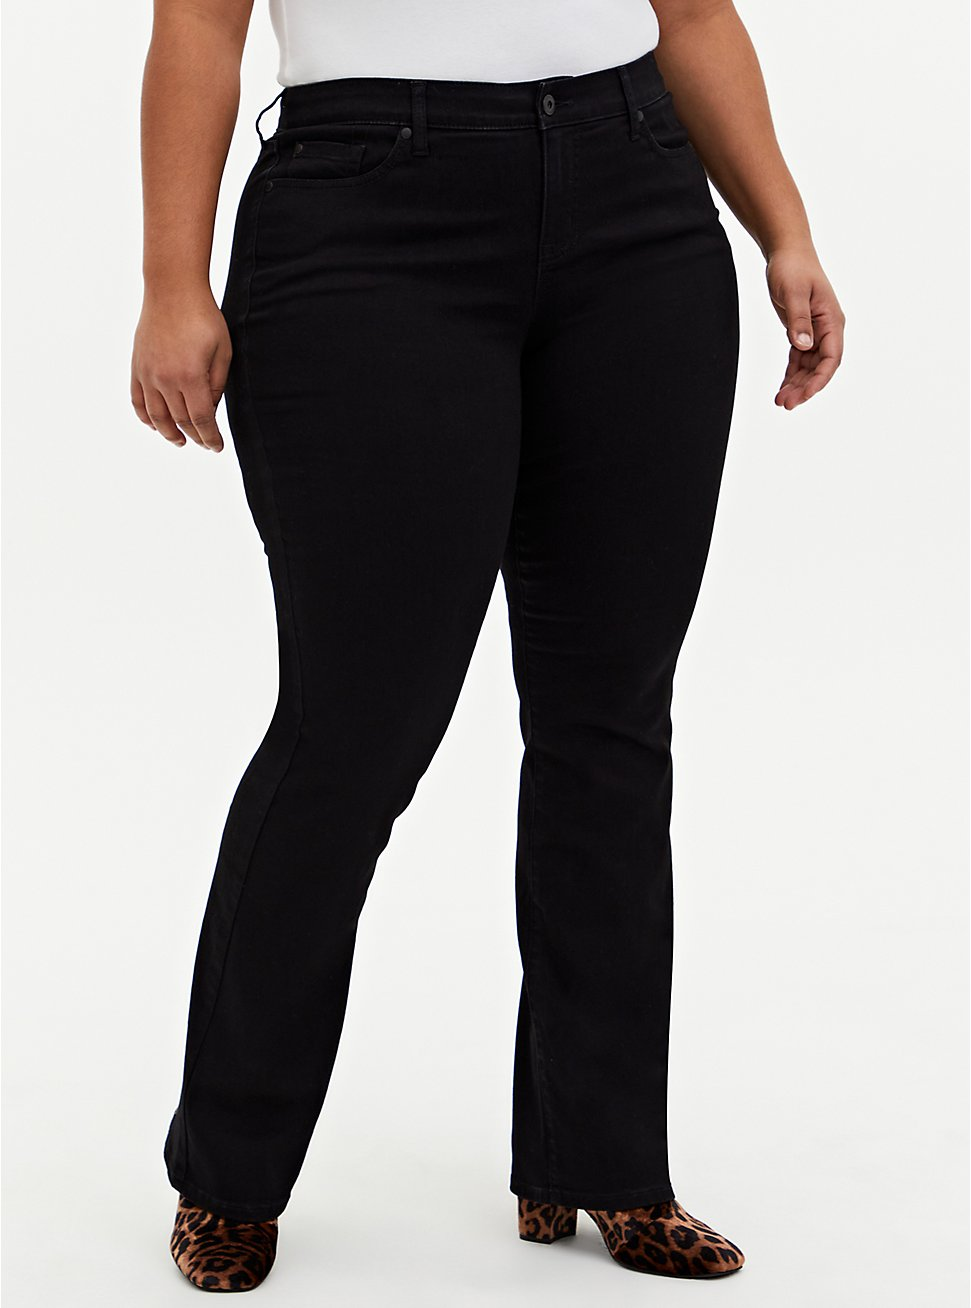 Mid Rise Slim Boot Jean - Super Soft Black, DEEP BLACK, hi-res